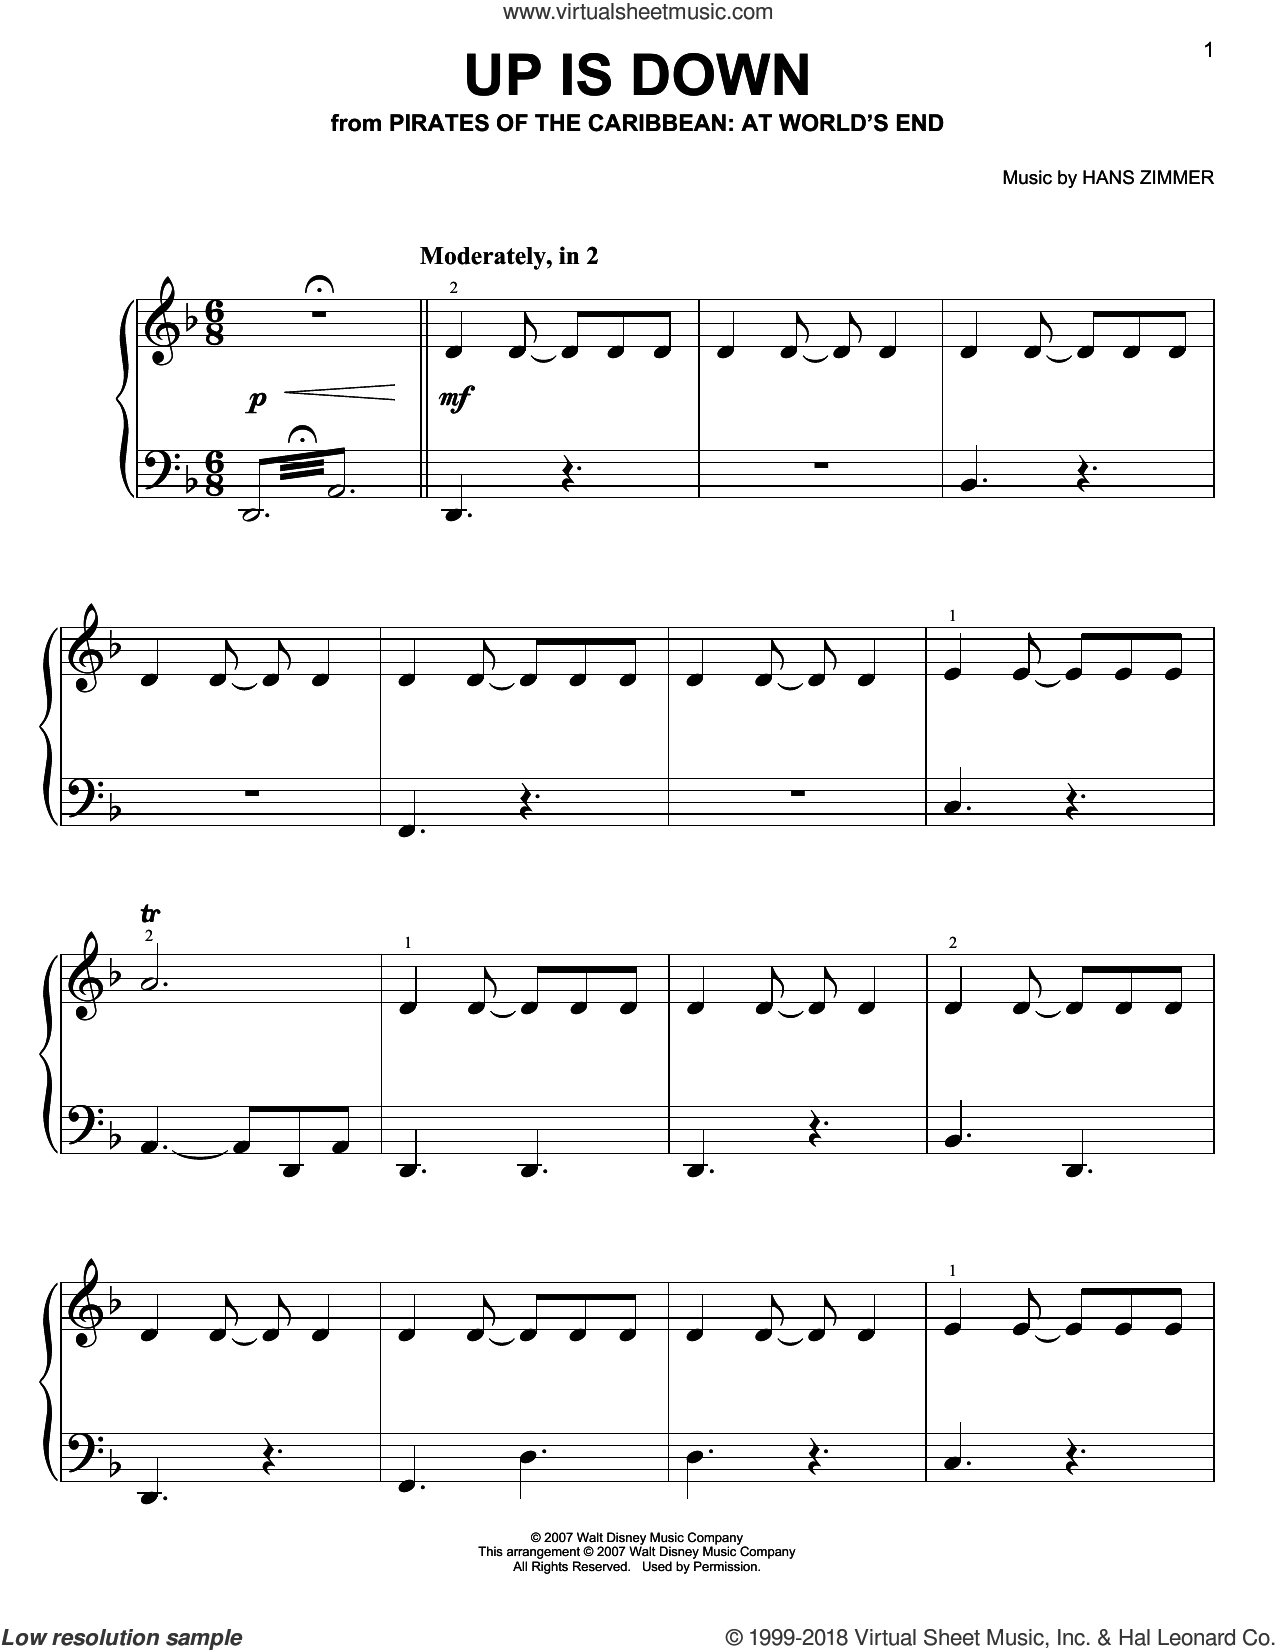 Up Is Down sheet music for piano solo by Hans Zimmer, easy. Score Image Preview.